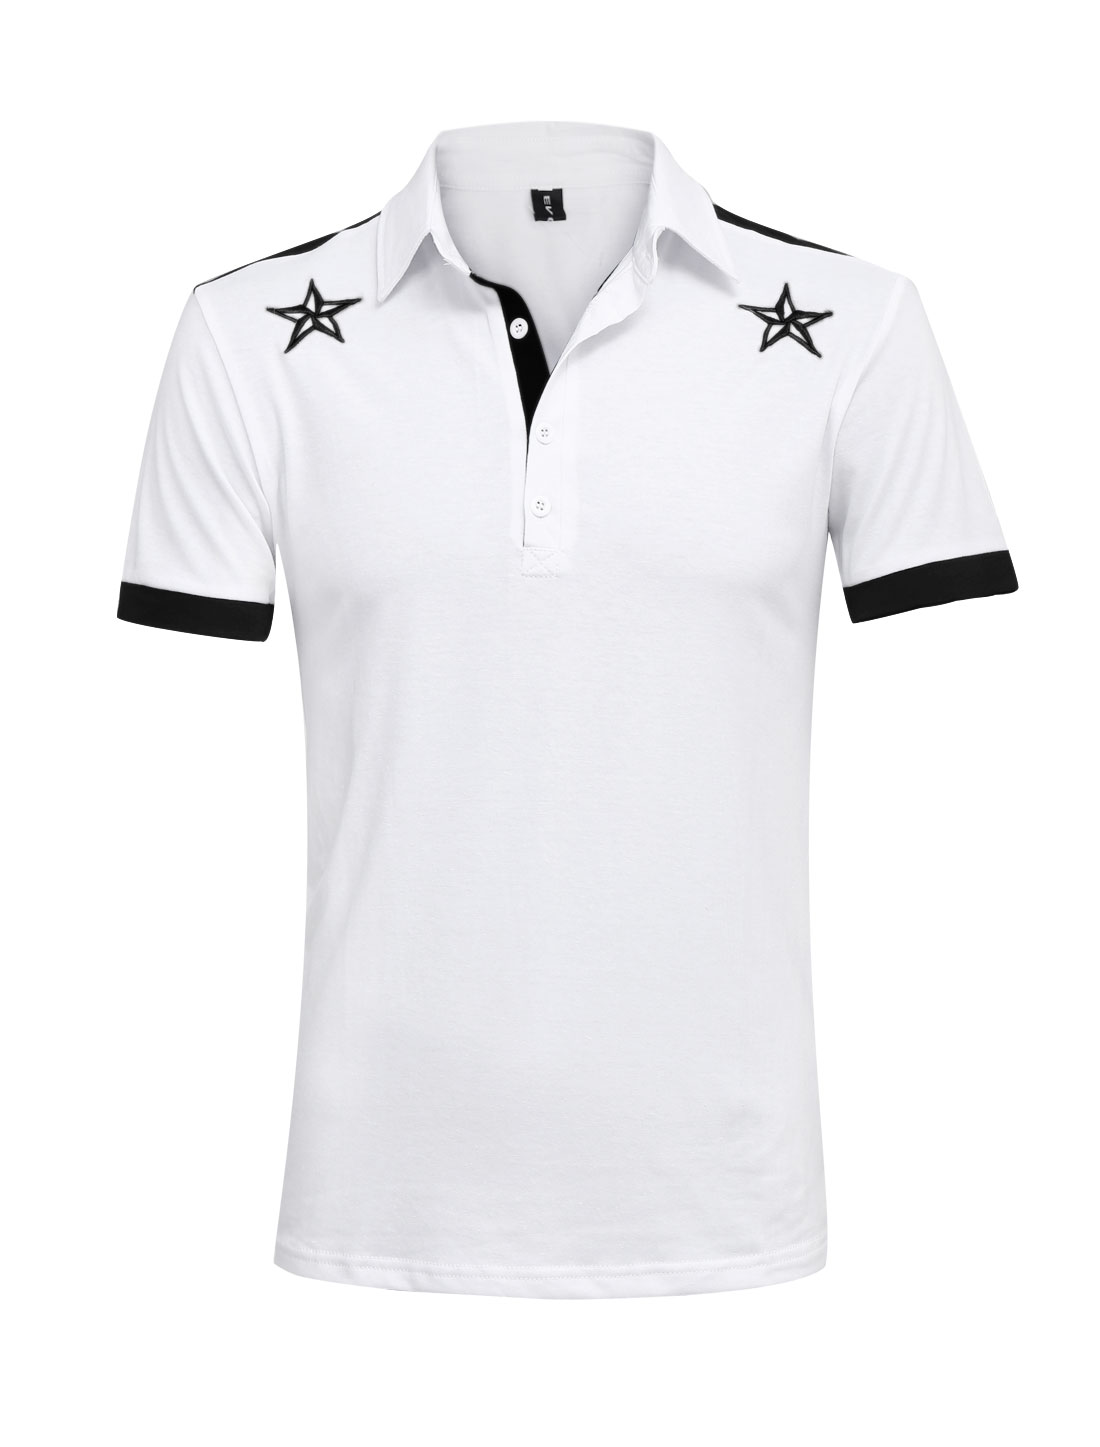 Men Patched Detail Stars Embroidery Leisure Polo Shirt White M